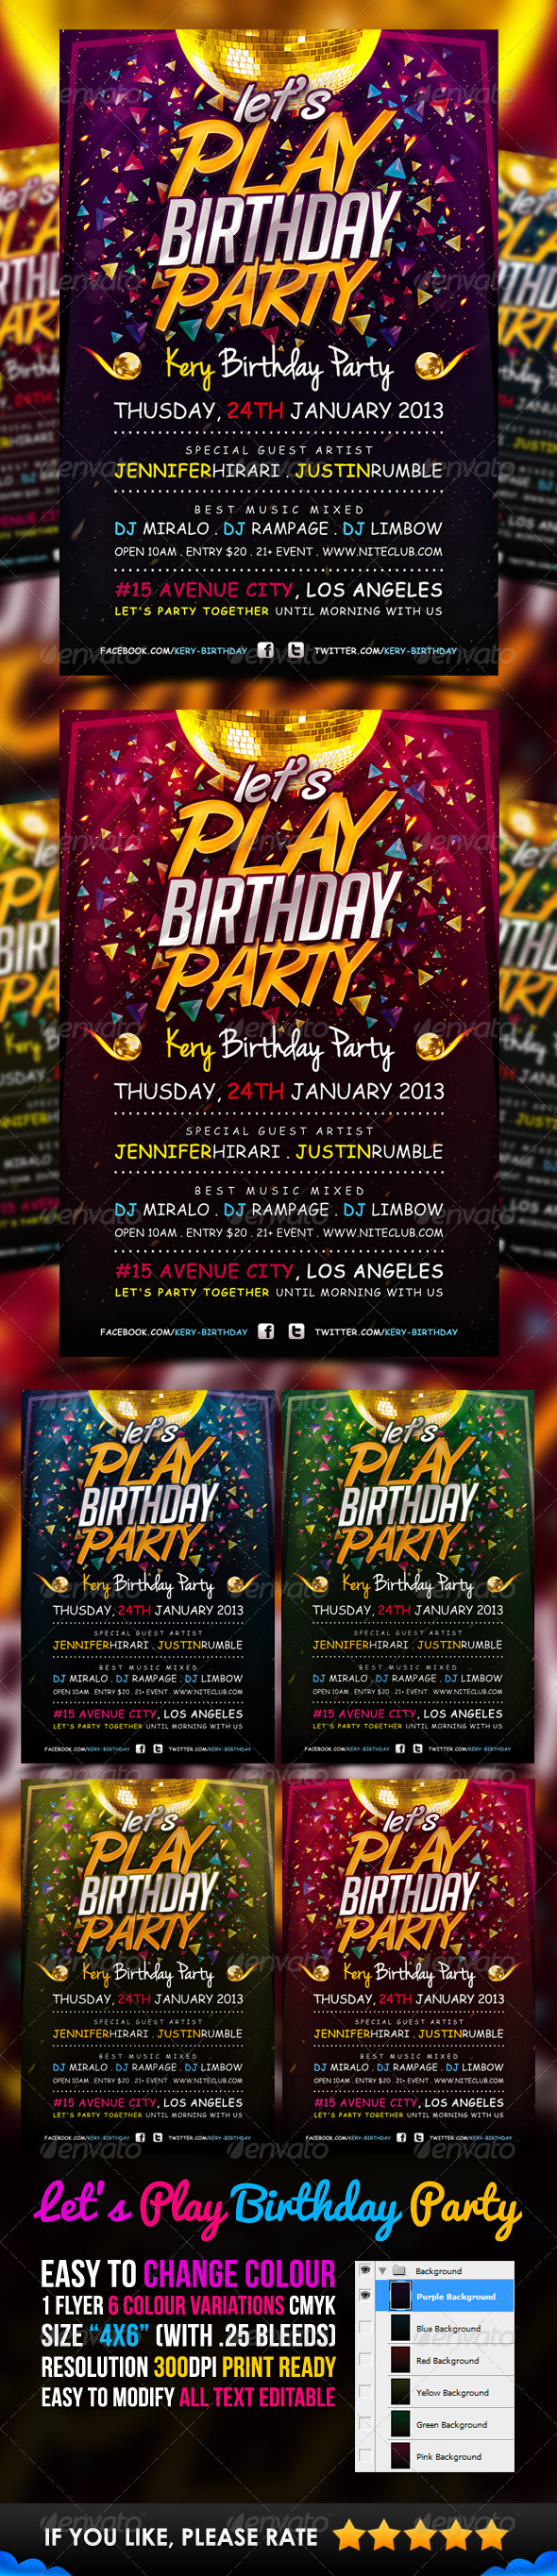 GraphicRiver Lets Play Birthday Party Flyer Template 3442369